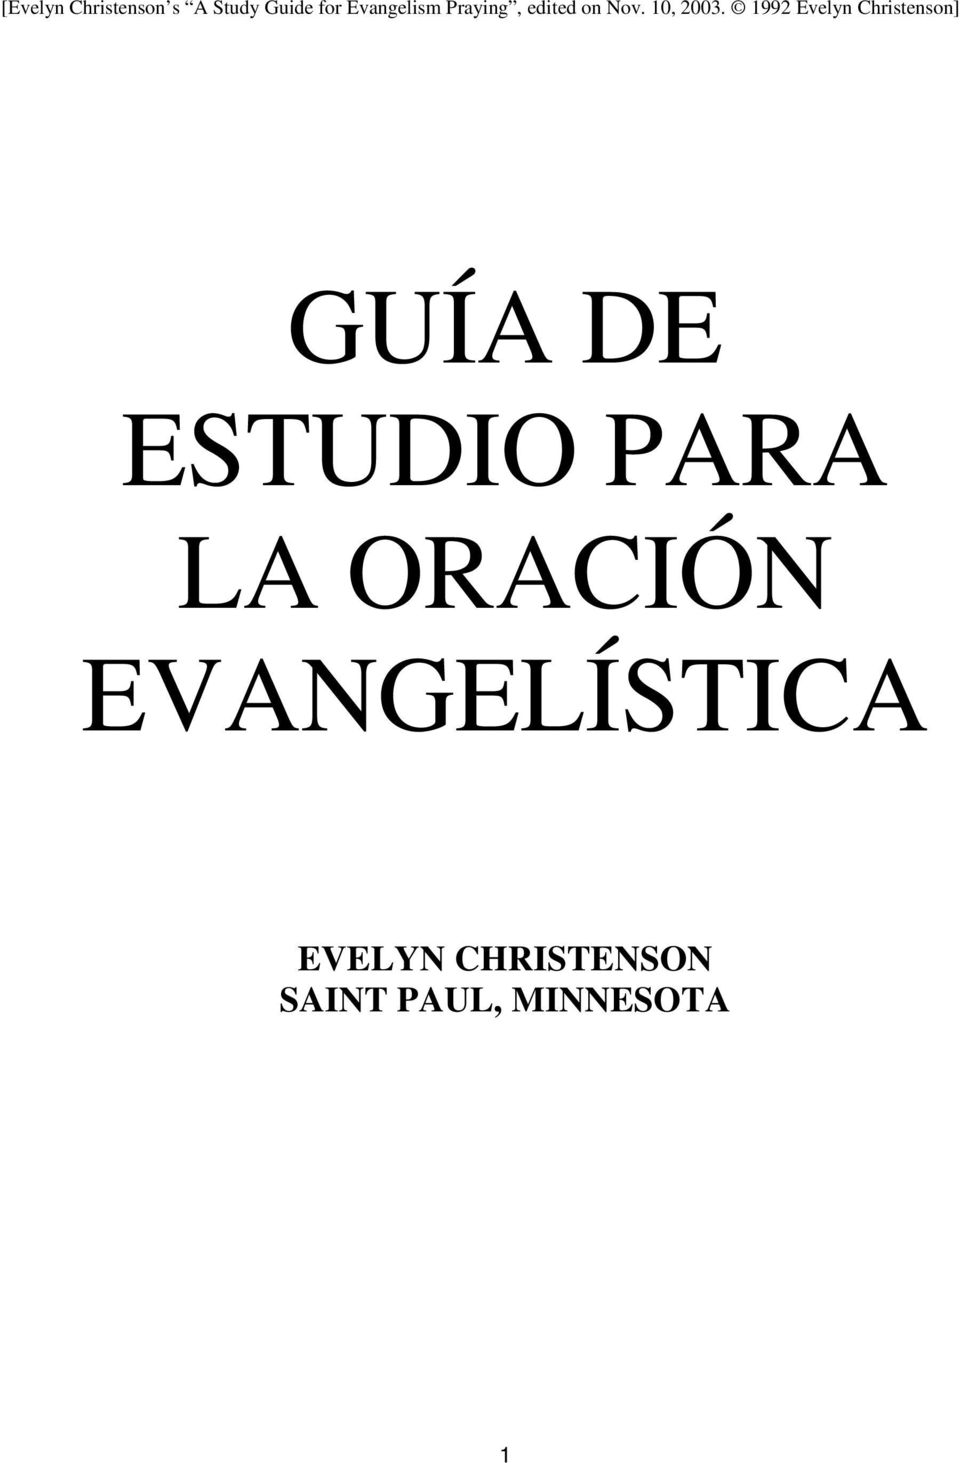 1992 Evelyn Christenson] GUÍA DE ESTUDIO PARA LA